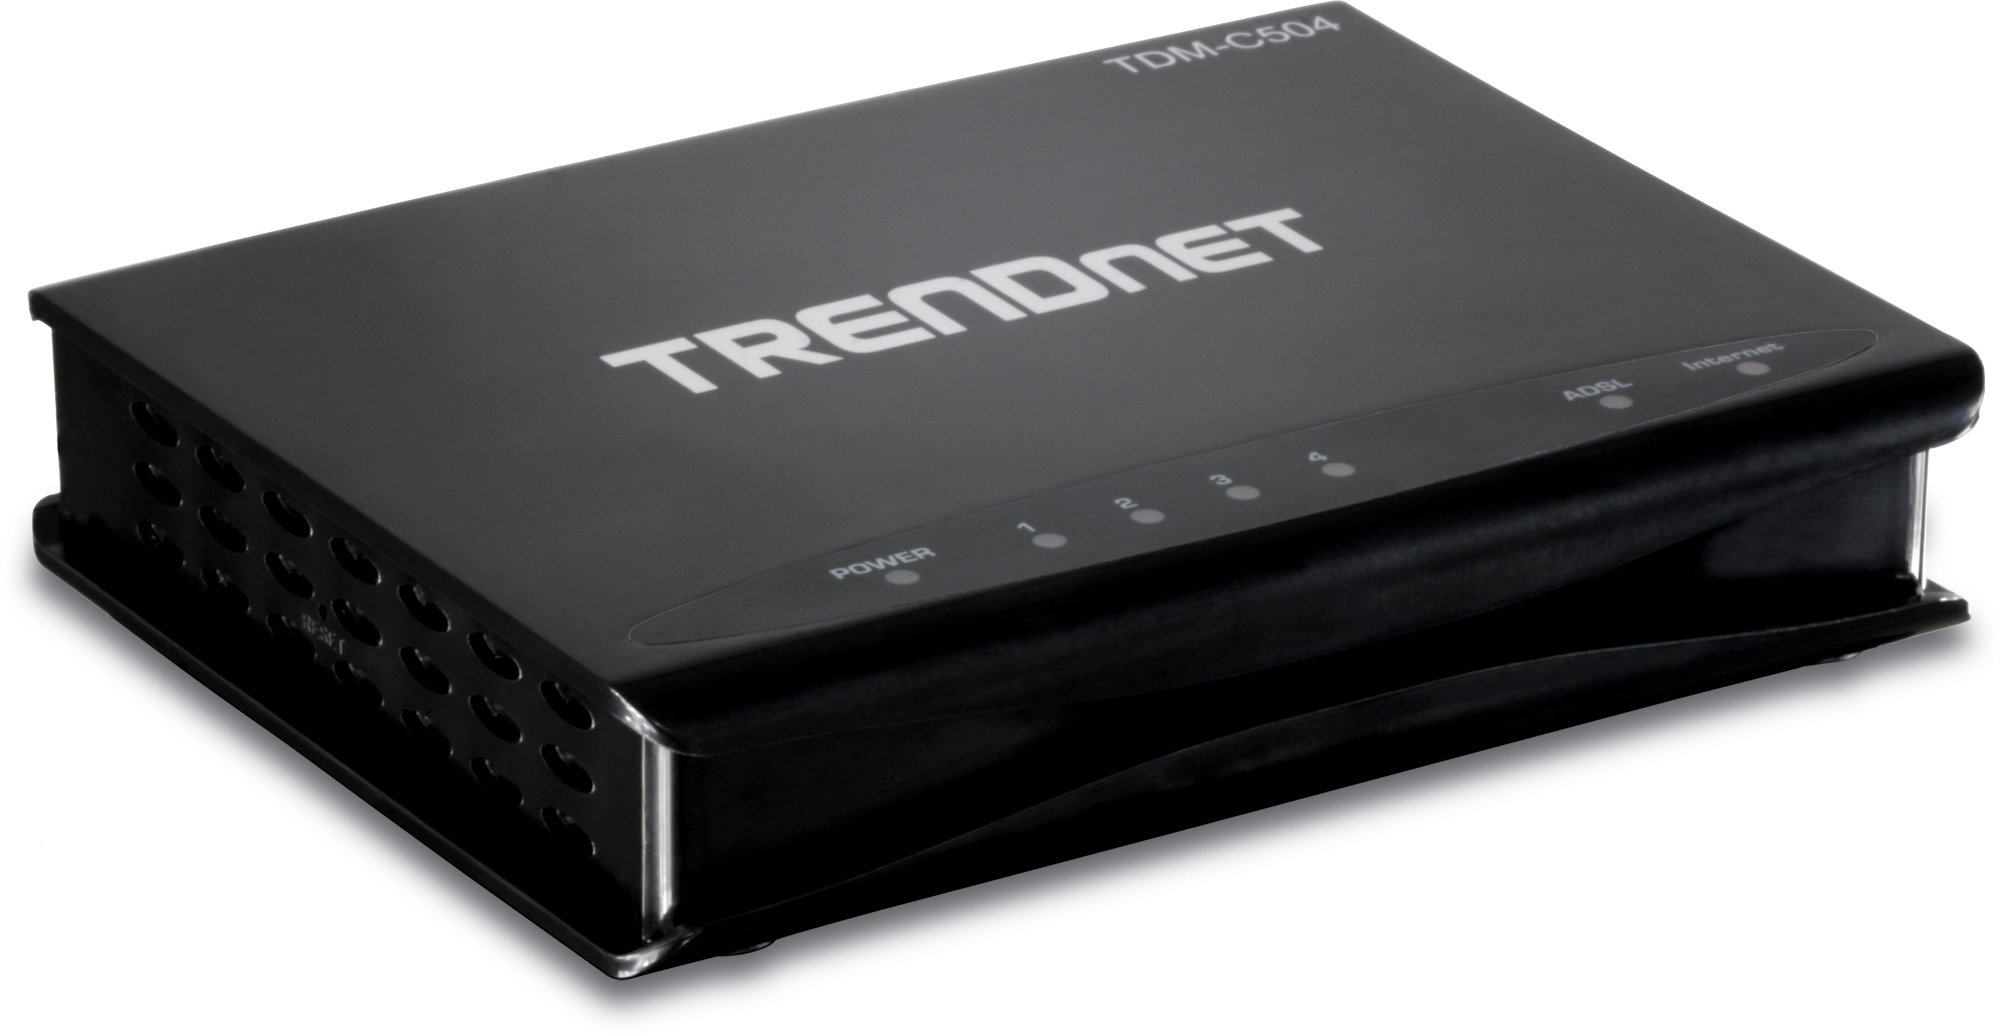 TRENDnet 4-Port ADSL 2/2+ Fast Ethernet Combination Modem Router, 4 x 10/100Mbps Auto-MDIX RJ-45 Ports, TDM-C504 by TRENDnet